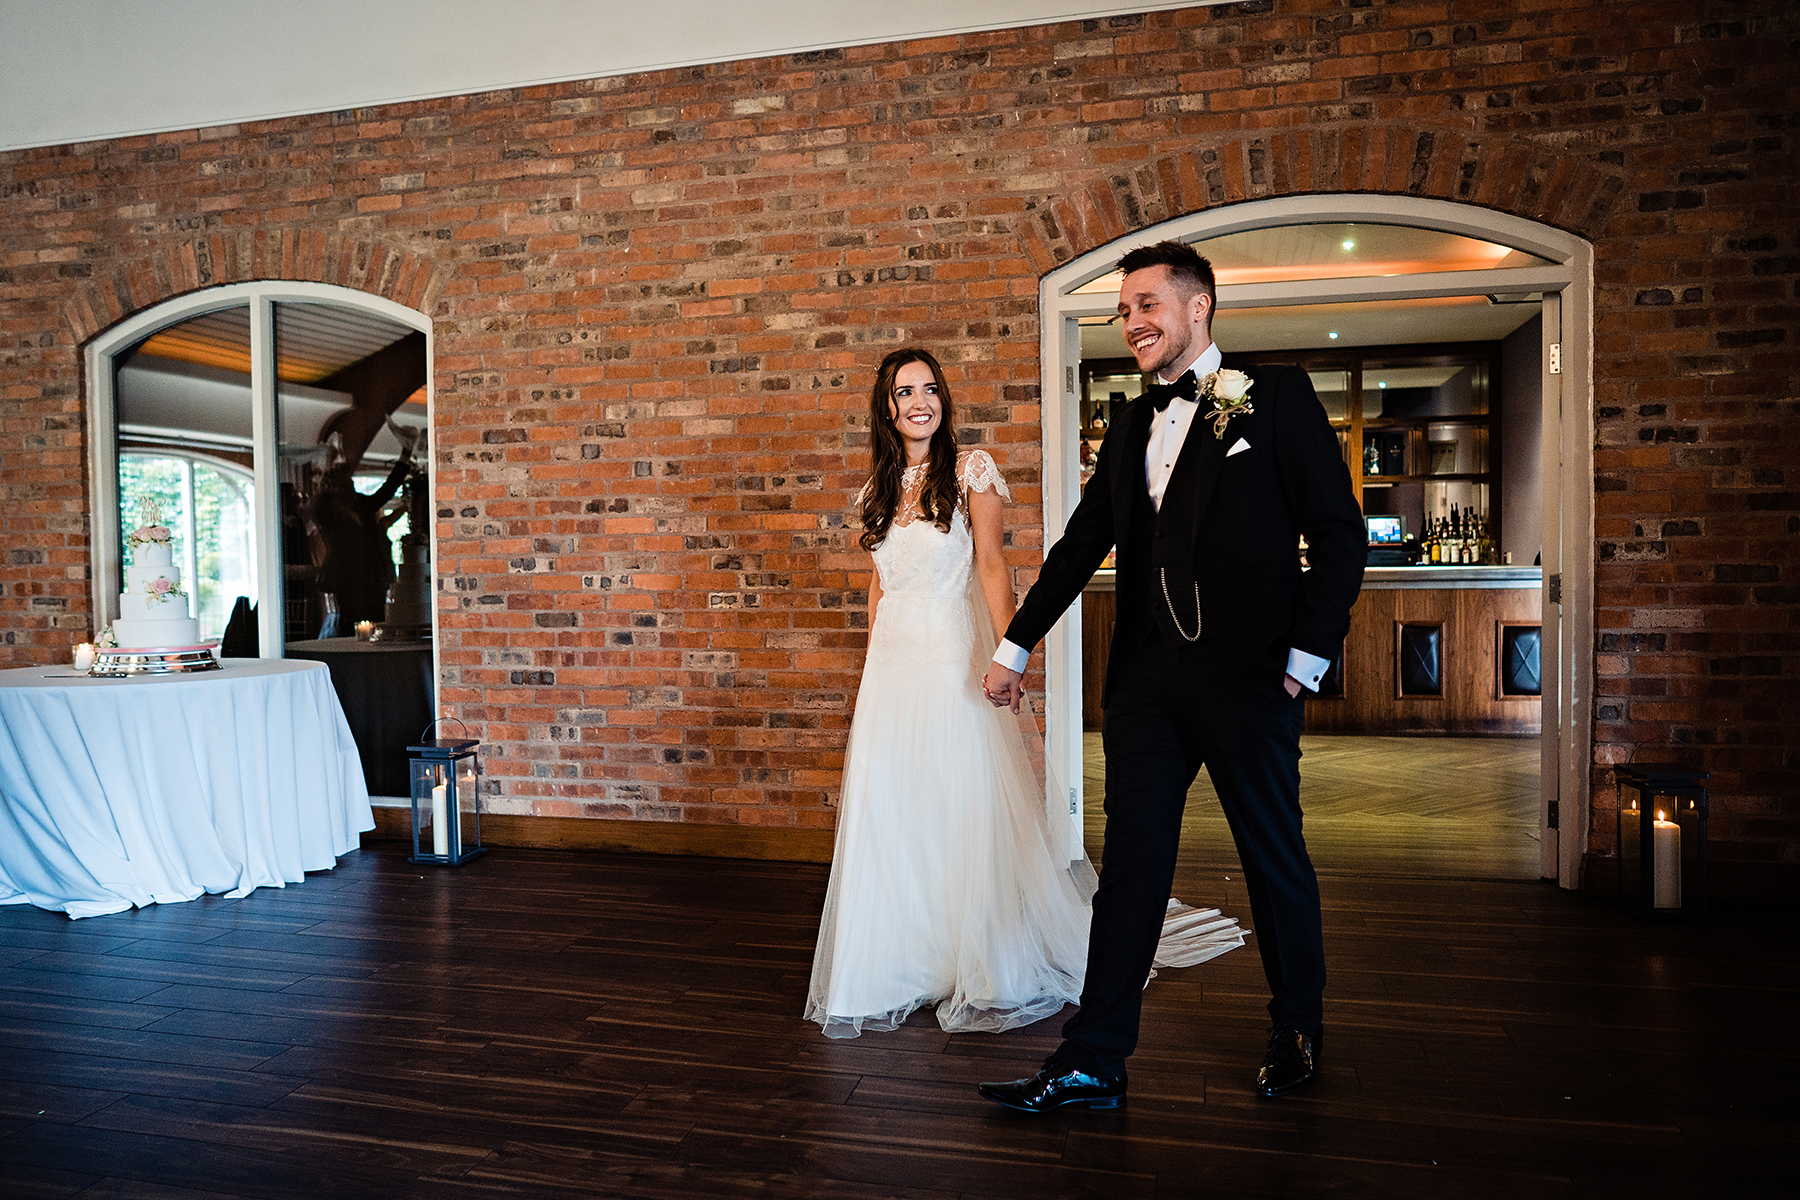 the couple walking into the reception room